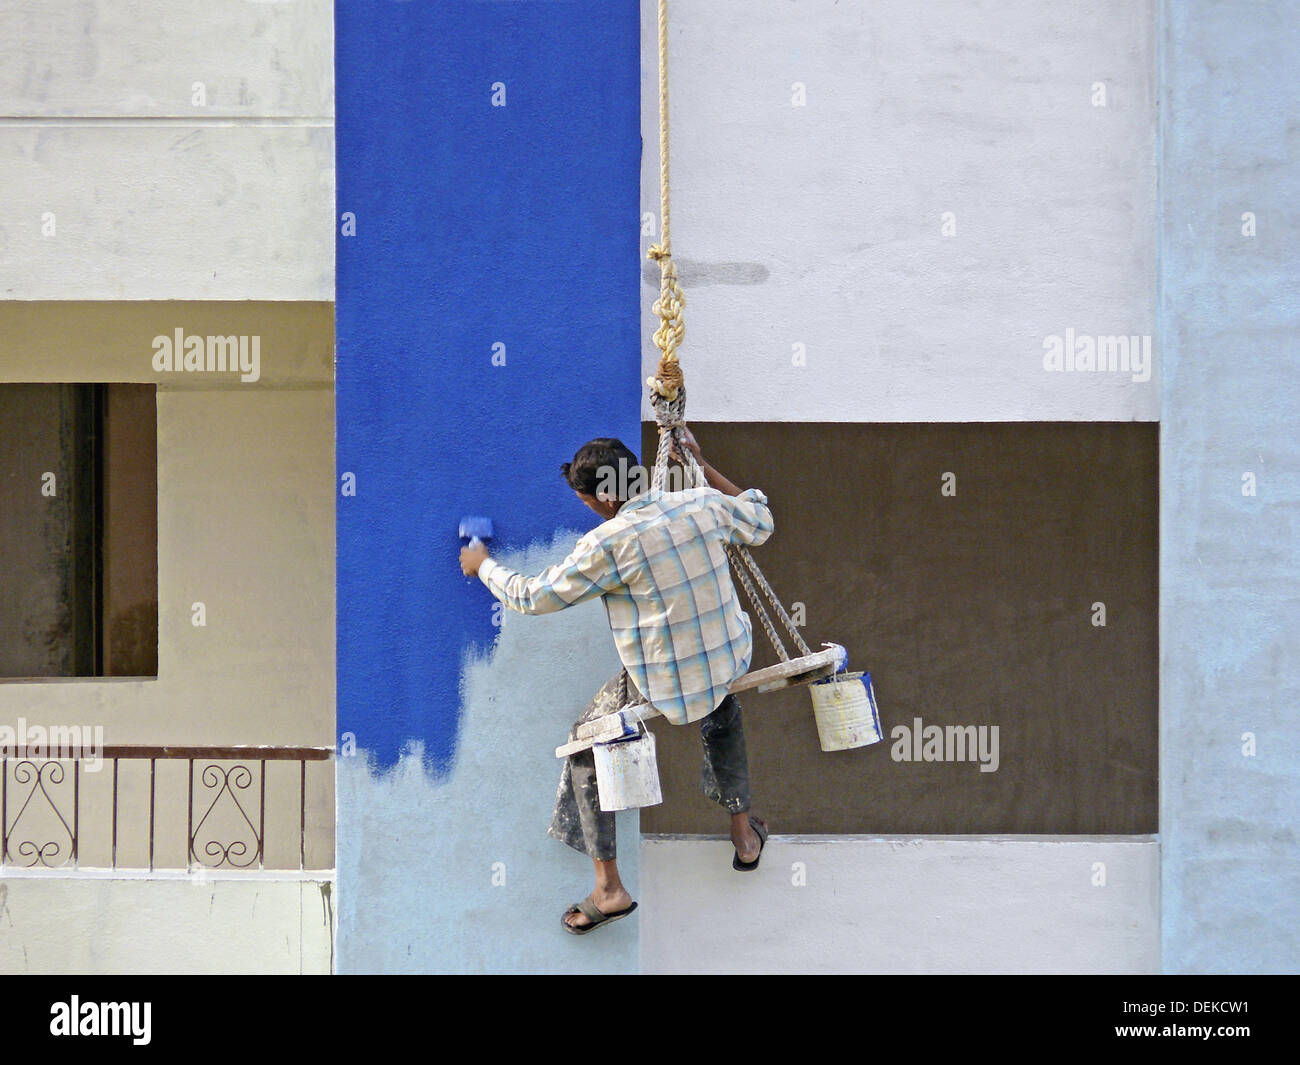 A Painter is seating on a cradle and working on a buildings